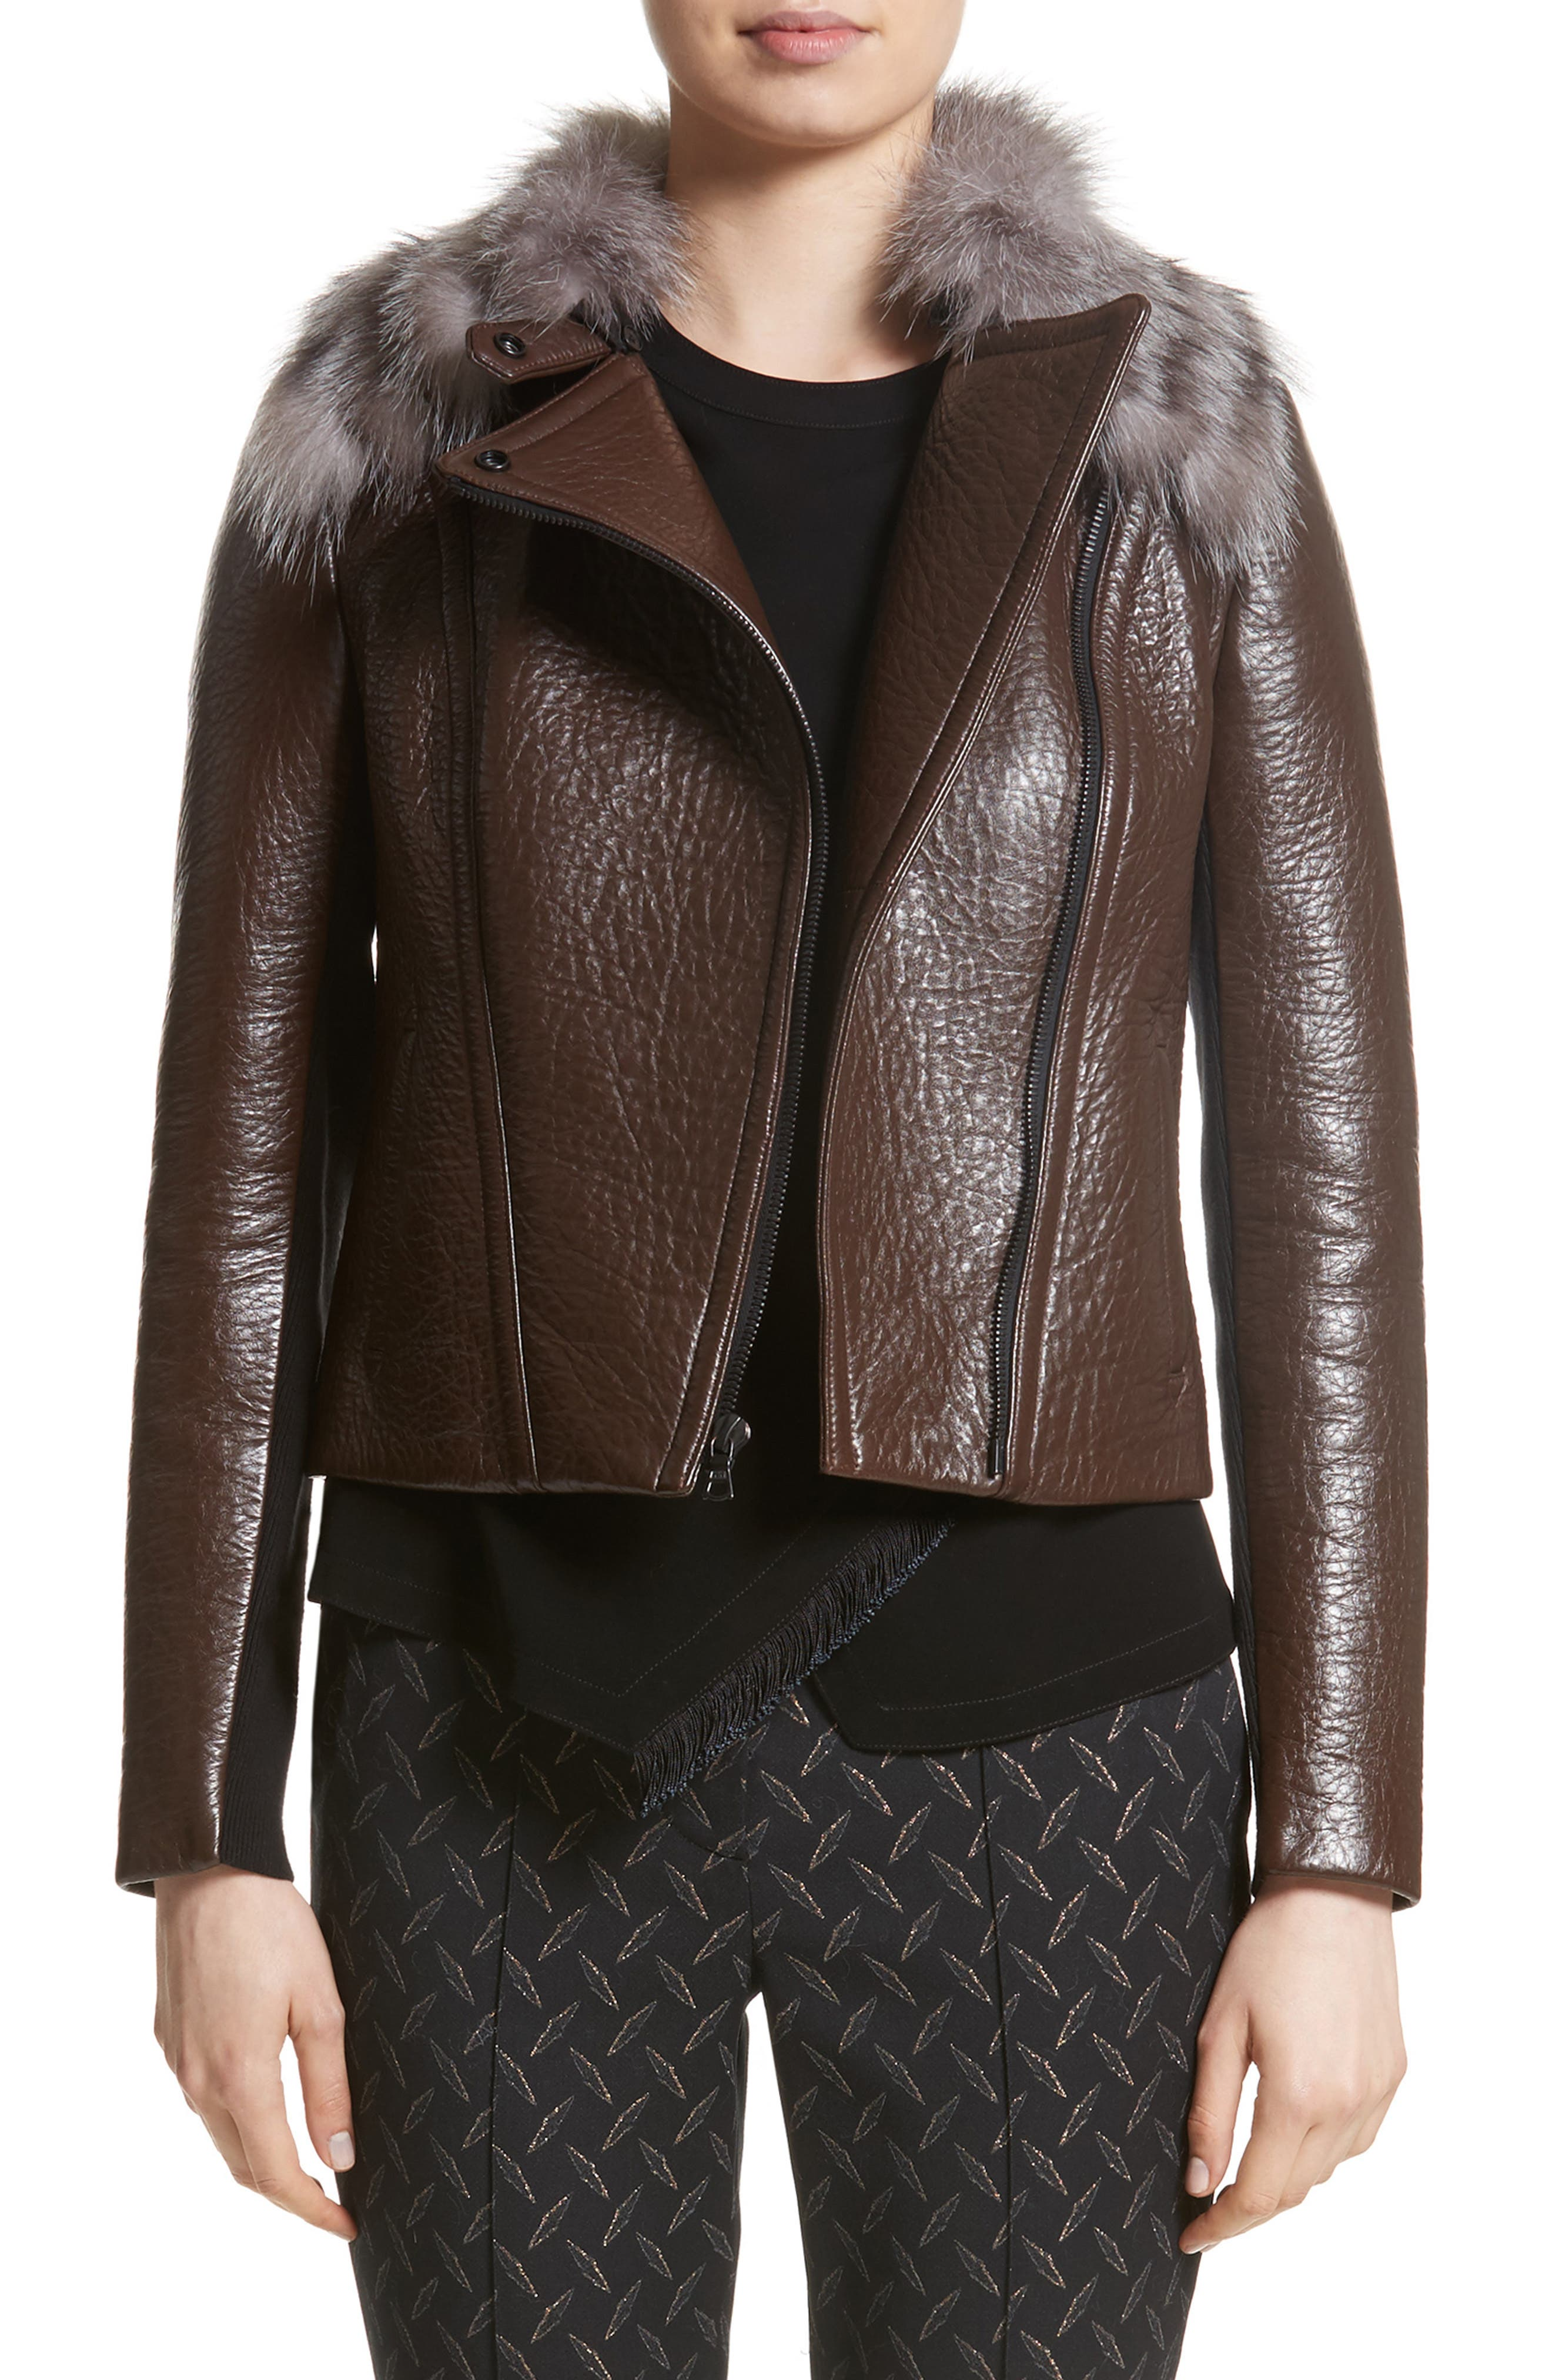 Alternate Image 1 Selected - Yigal Azrouël Bonded Moto Leather Jacket with Removable Genuine Fox Fur Collar